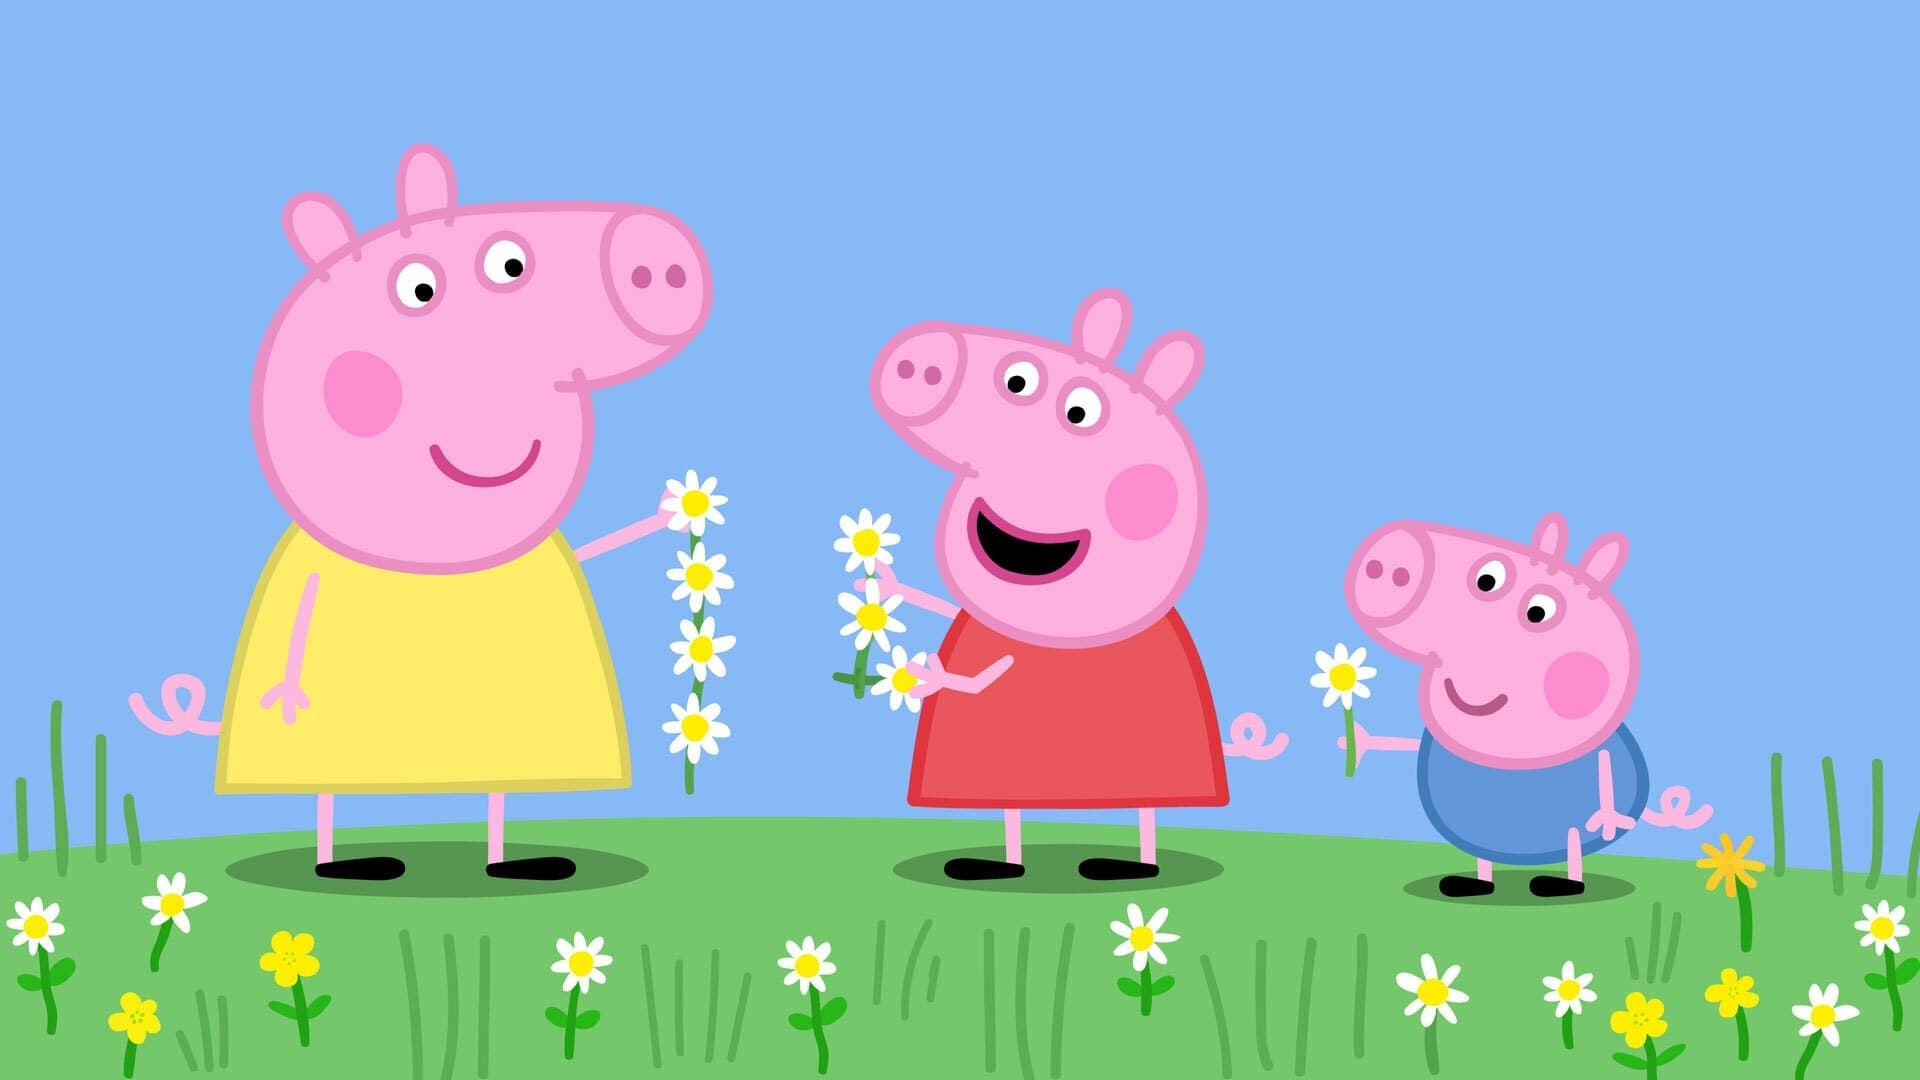 Peppa Pig Season 6 :Episode 10  Buttercups, Daisies and Dandelions